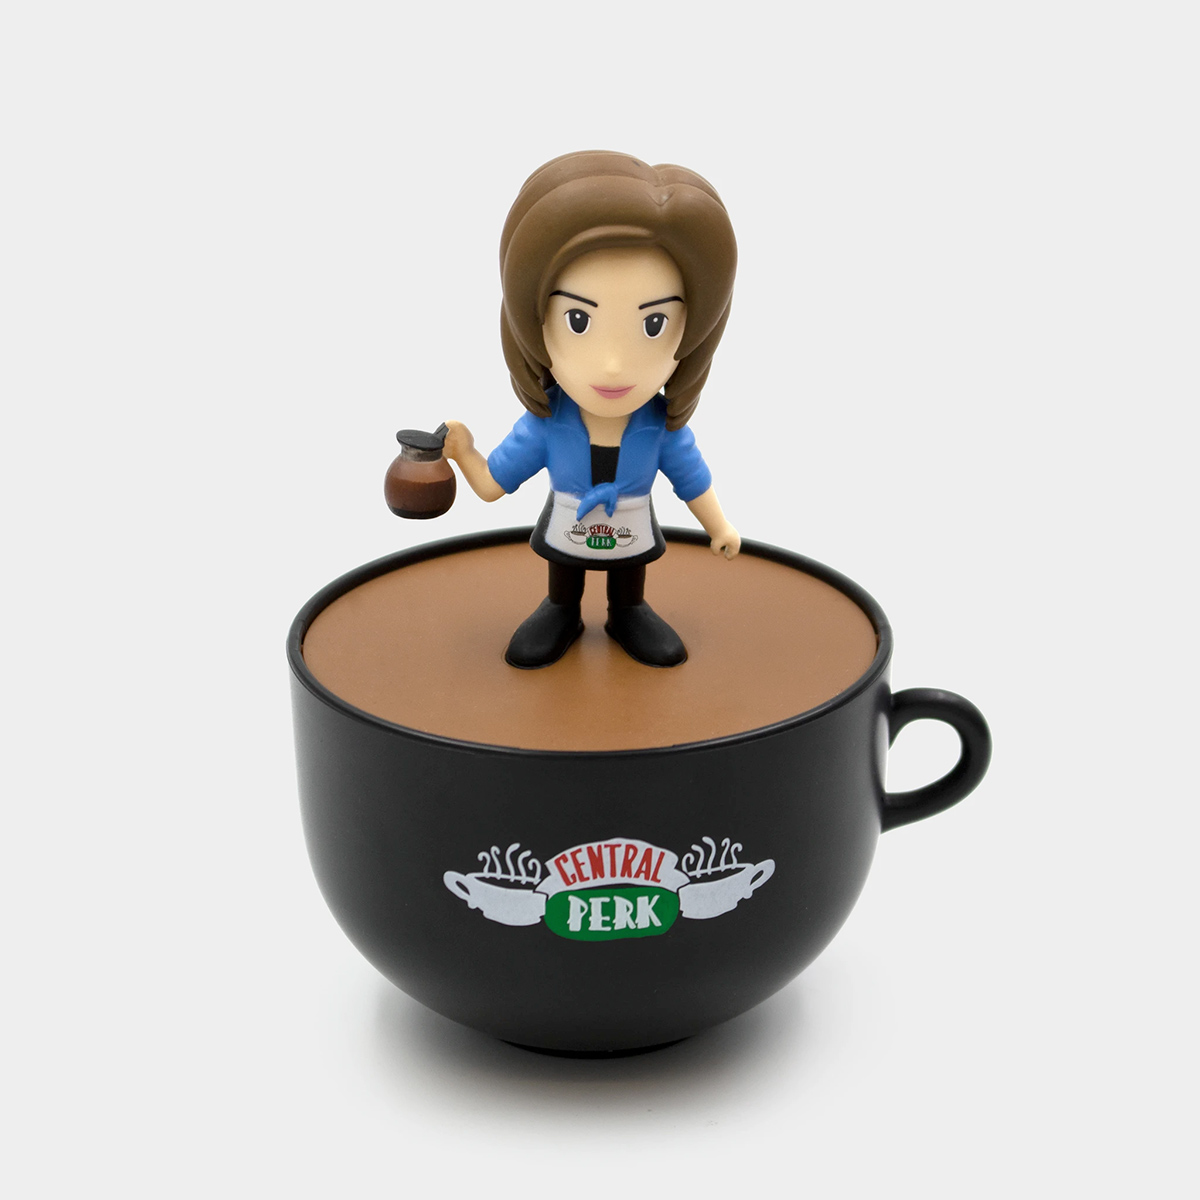 Friends Smols Collectible Figures